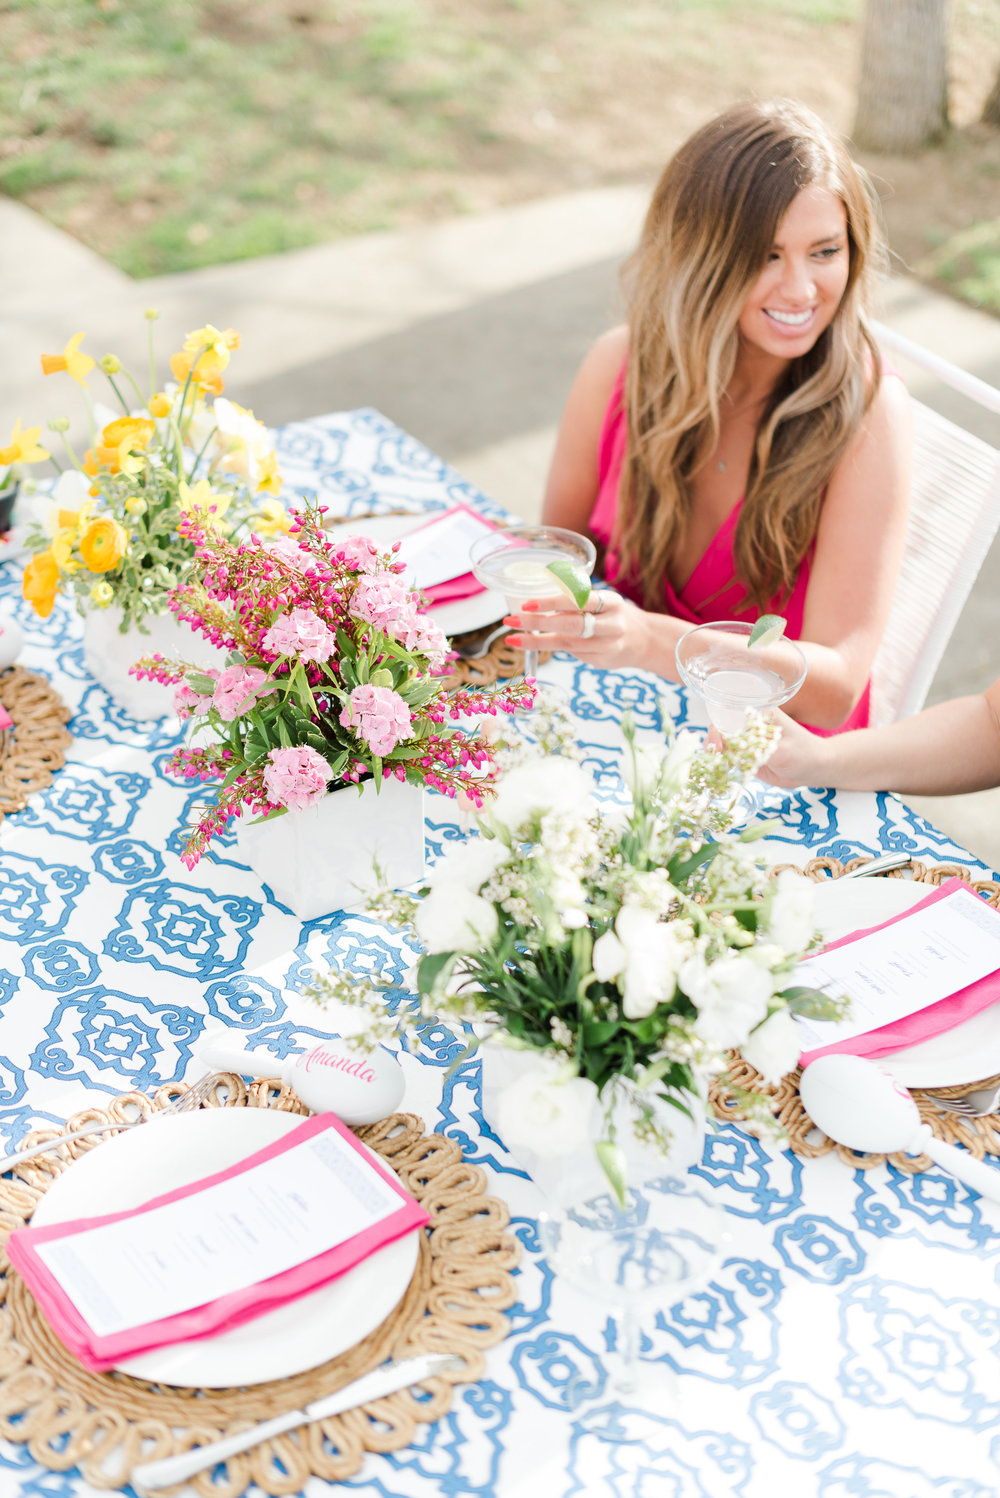 Fiesta-Party-Inspiration-by-Event-Prep-Cassandra-Clair-Photograpy-Amanda-Collins-76.jpg